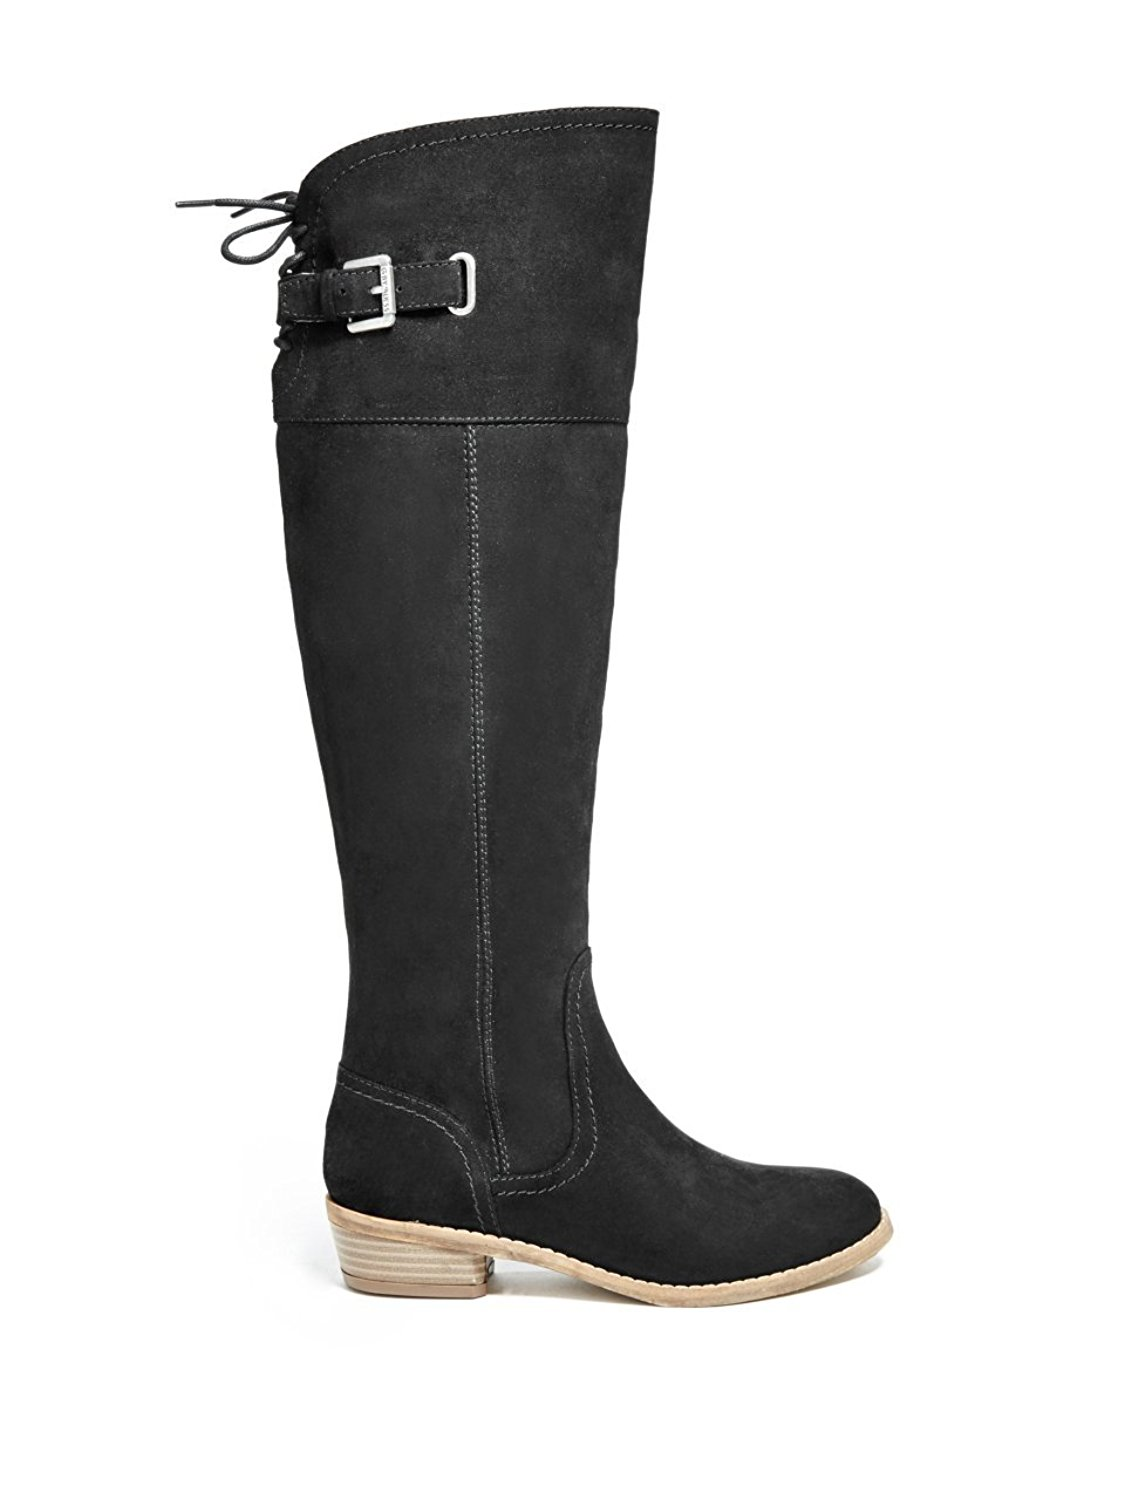 G by Guess Womens Aikon Closed Toe Knee High Riding Boots Black Size 6.0 BtTU